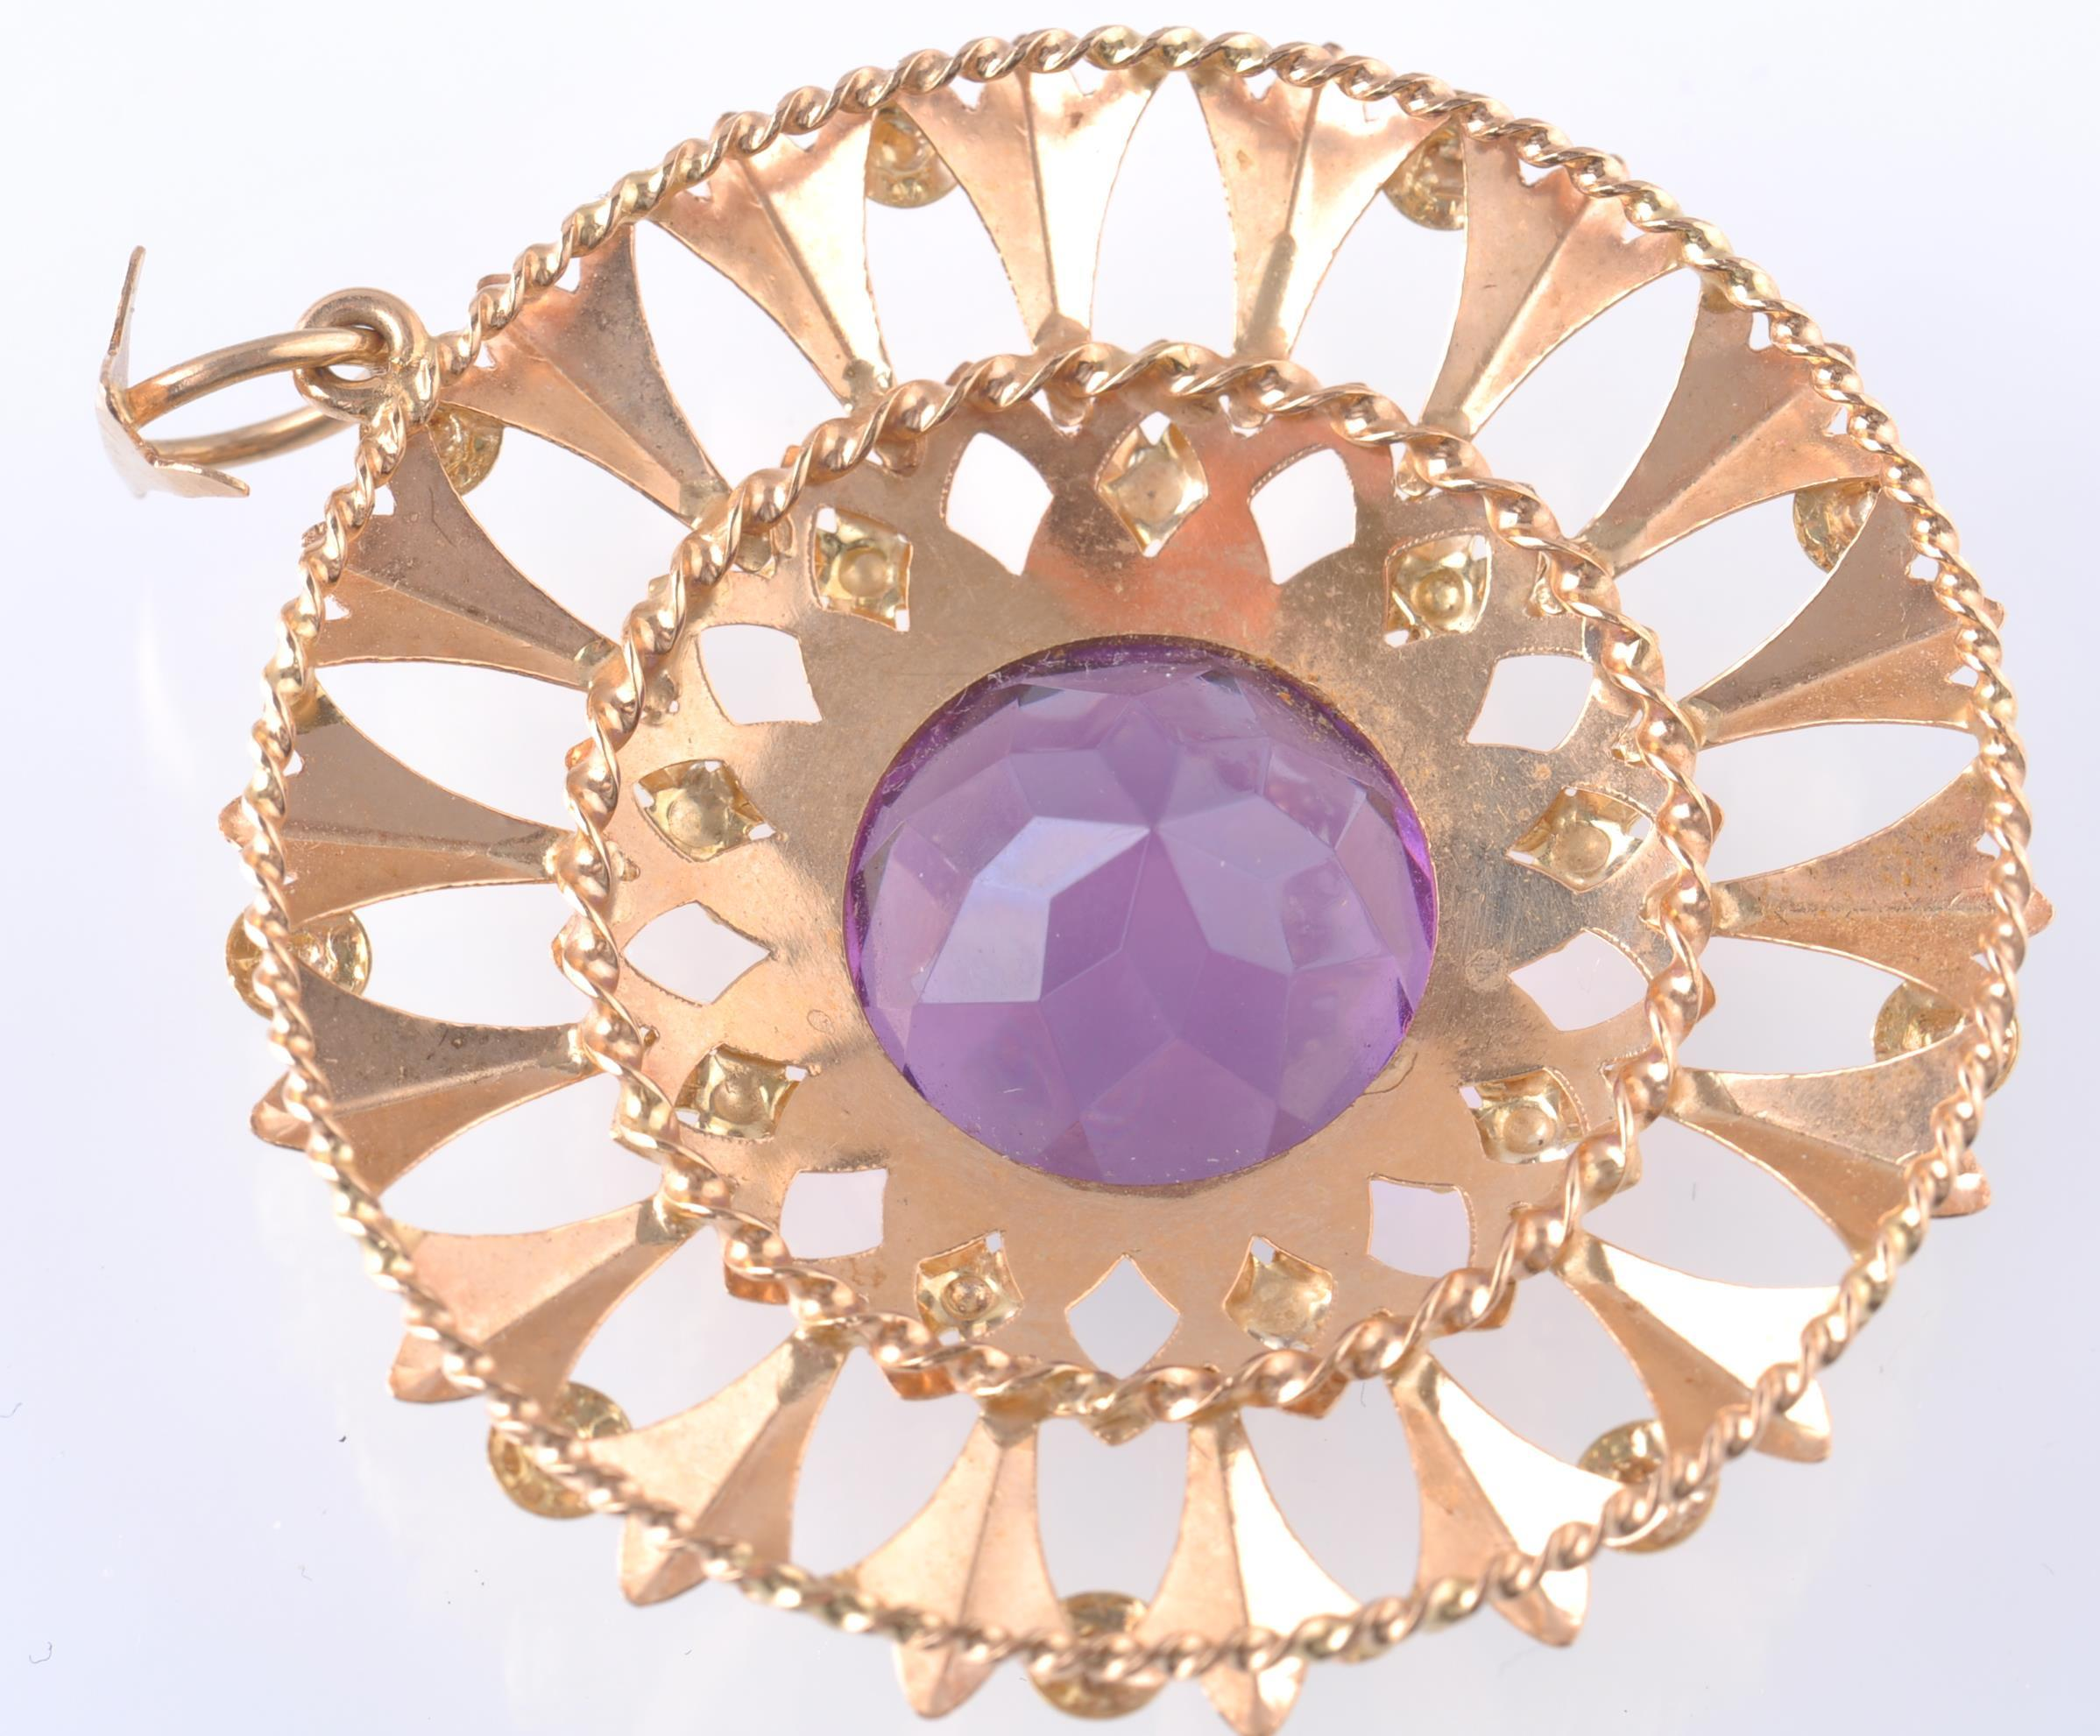 AN 18CT GOLD AND PURPLE GEM PENDANT BROOCH - Image 2 of 2